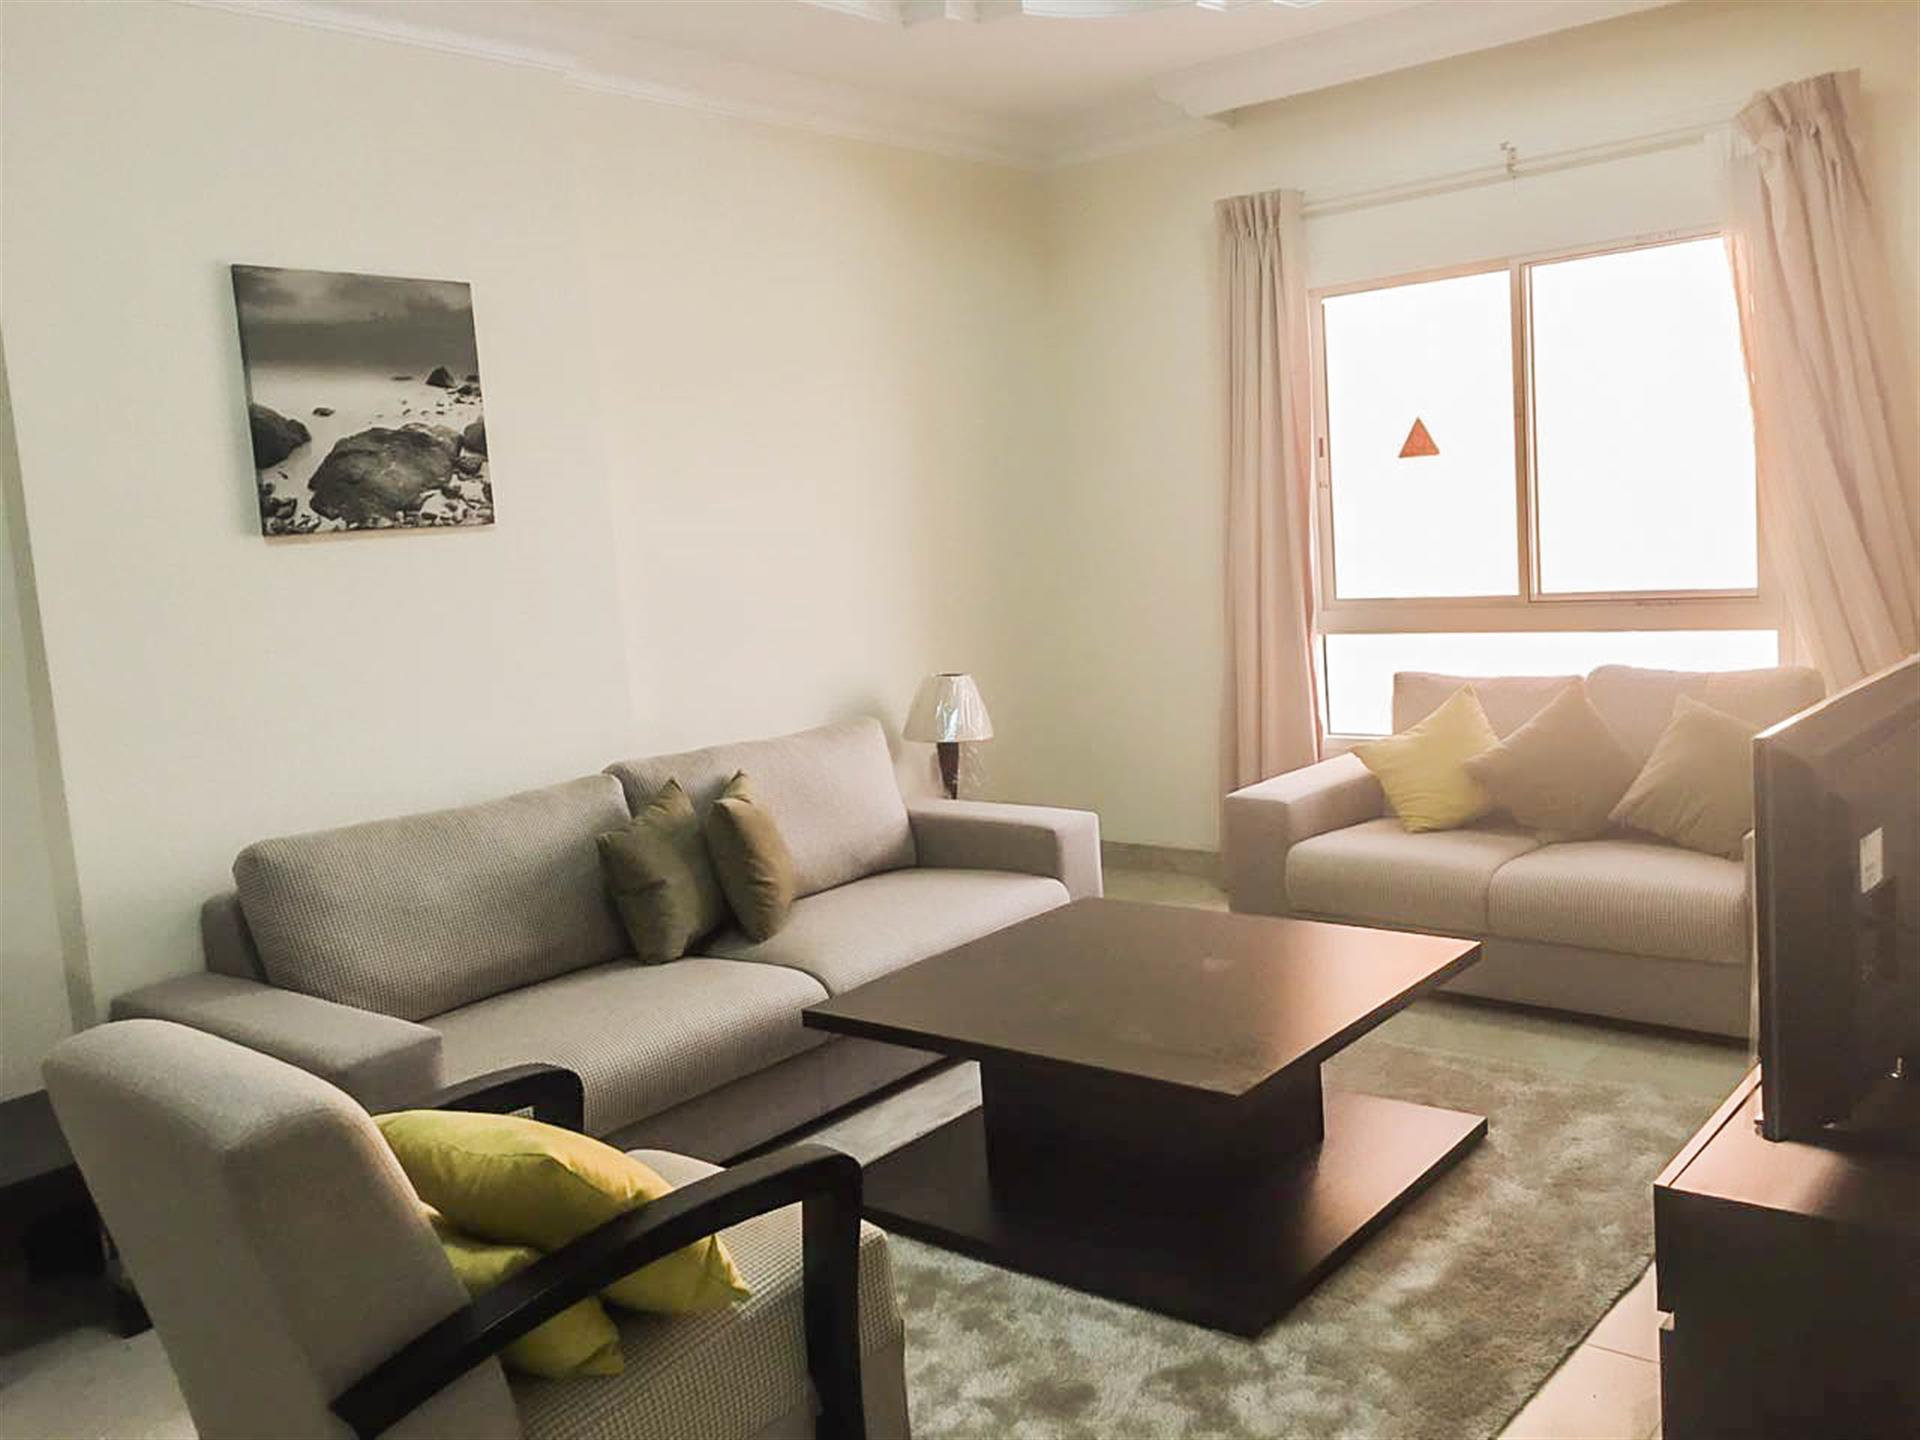 Marvelous Brand New Fully Furnished 2 Bedroom Apartment At Al Sadd Download Free Architecture Designs Scobabritishbridgeorg